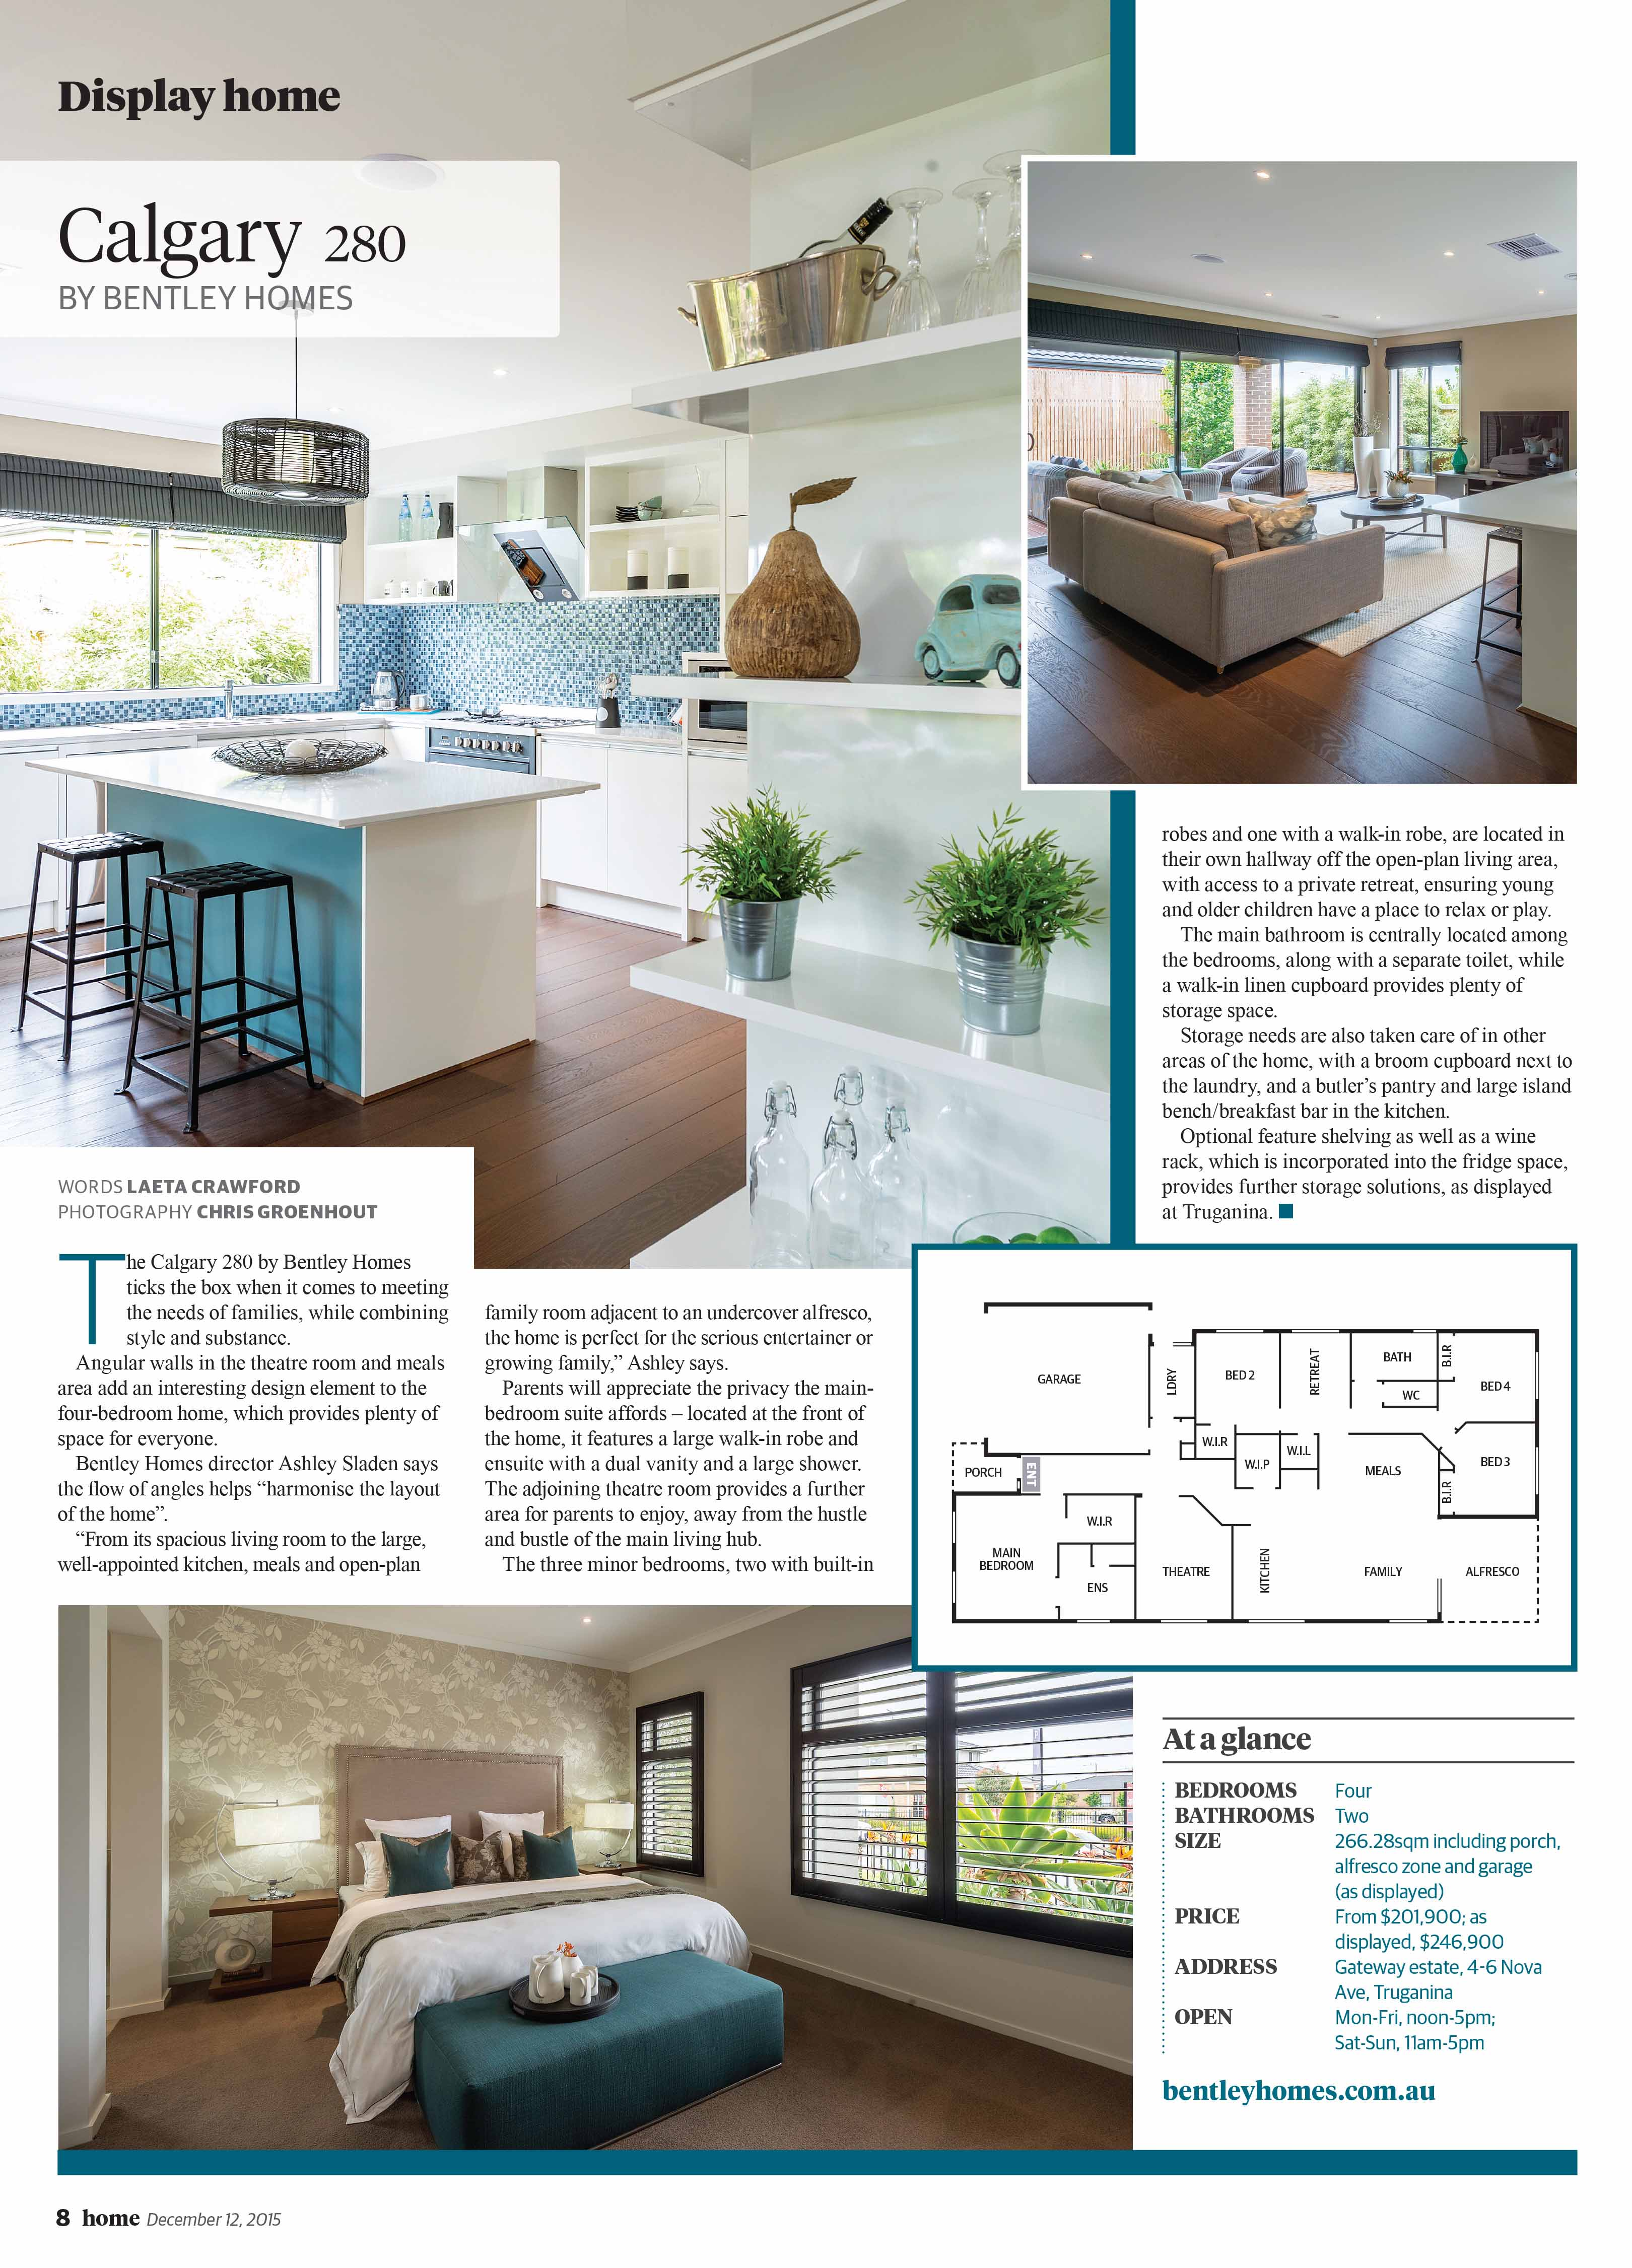 Article Of Calgary 280 Home Design By Bentley Homes